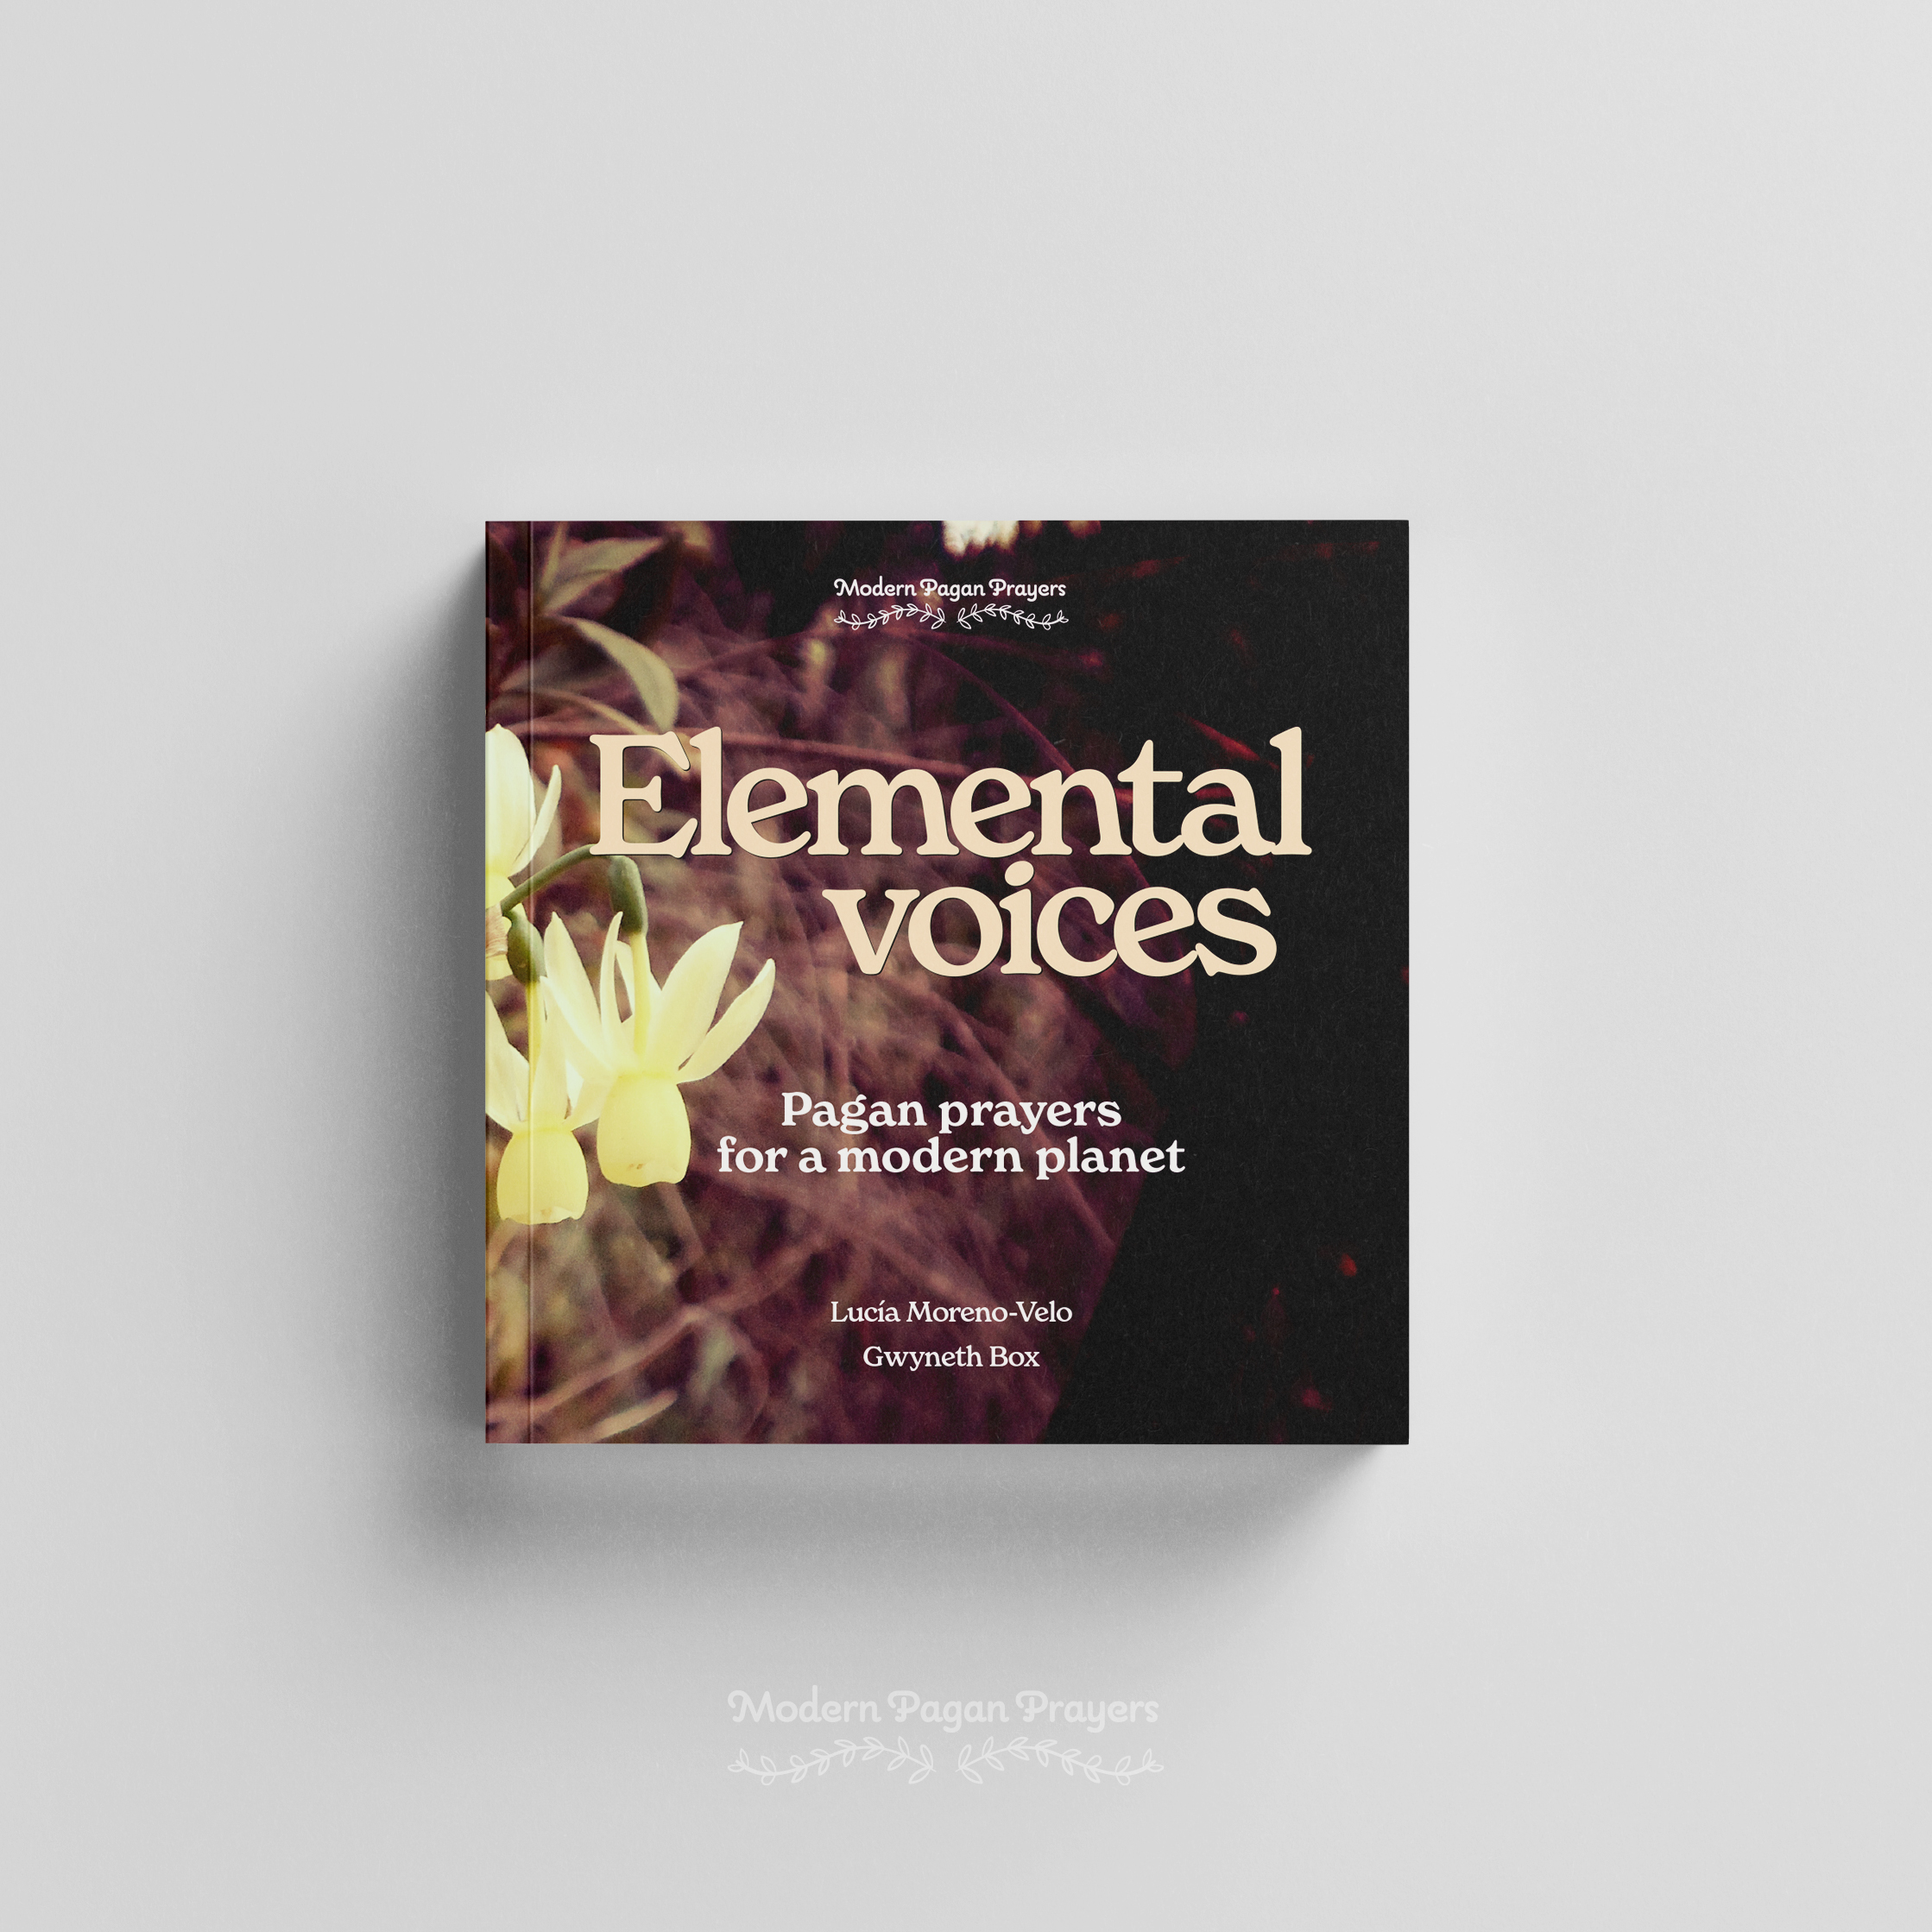 Elemental voices - book cover